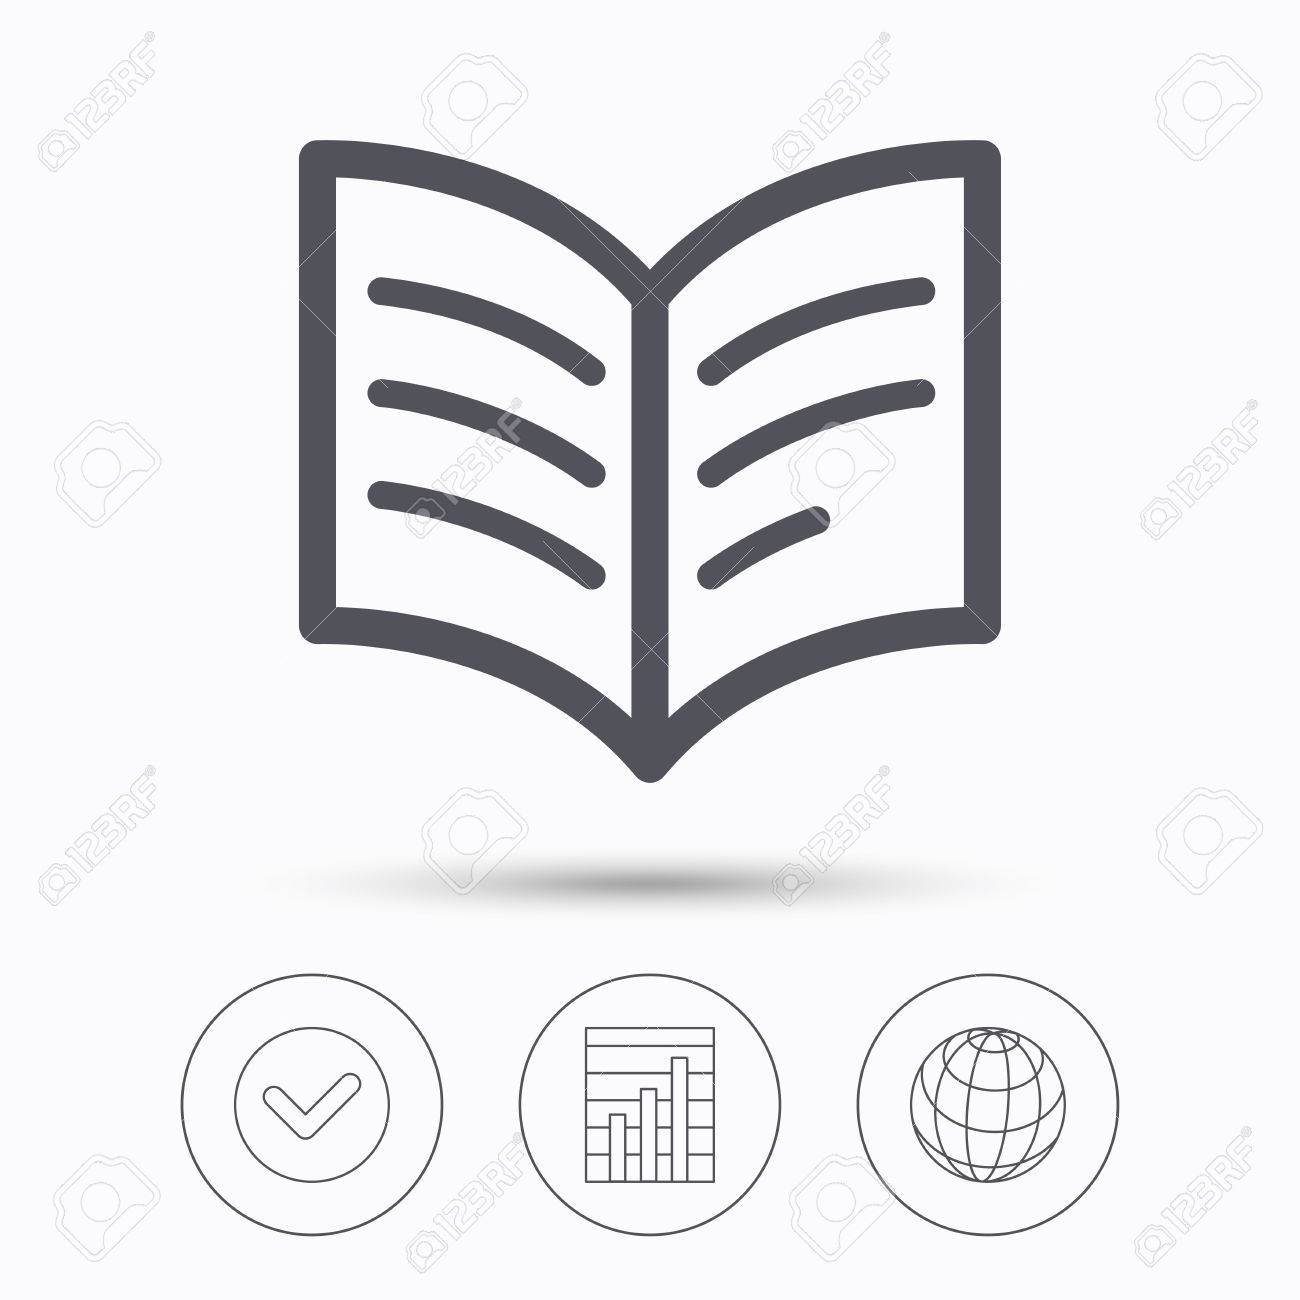 book icon study literature sign education textbook symbol  study literature sign education textbook symbol check tick graph chart